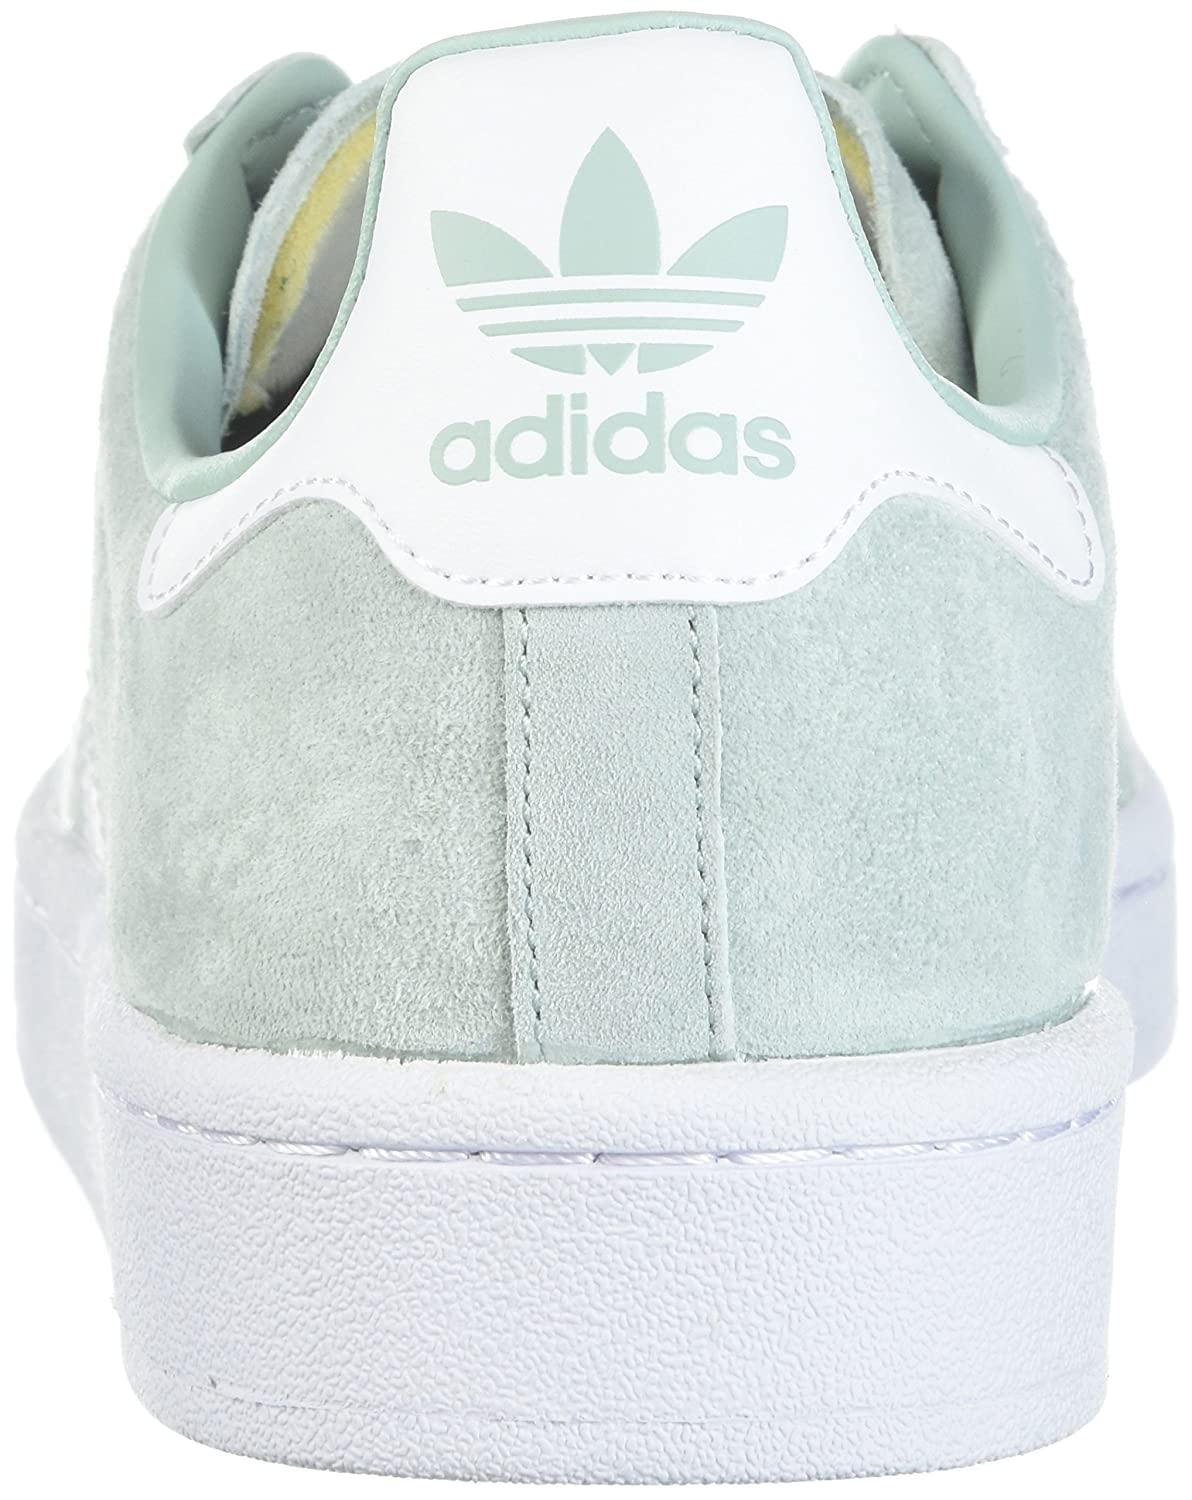 Adidas-Campus-Men-039-s-Casual-Fashion-Sneakers-Retro-Athletic-Shoes thumbnail 4